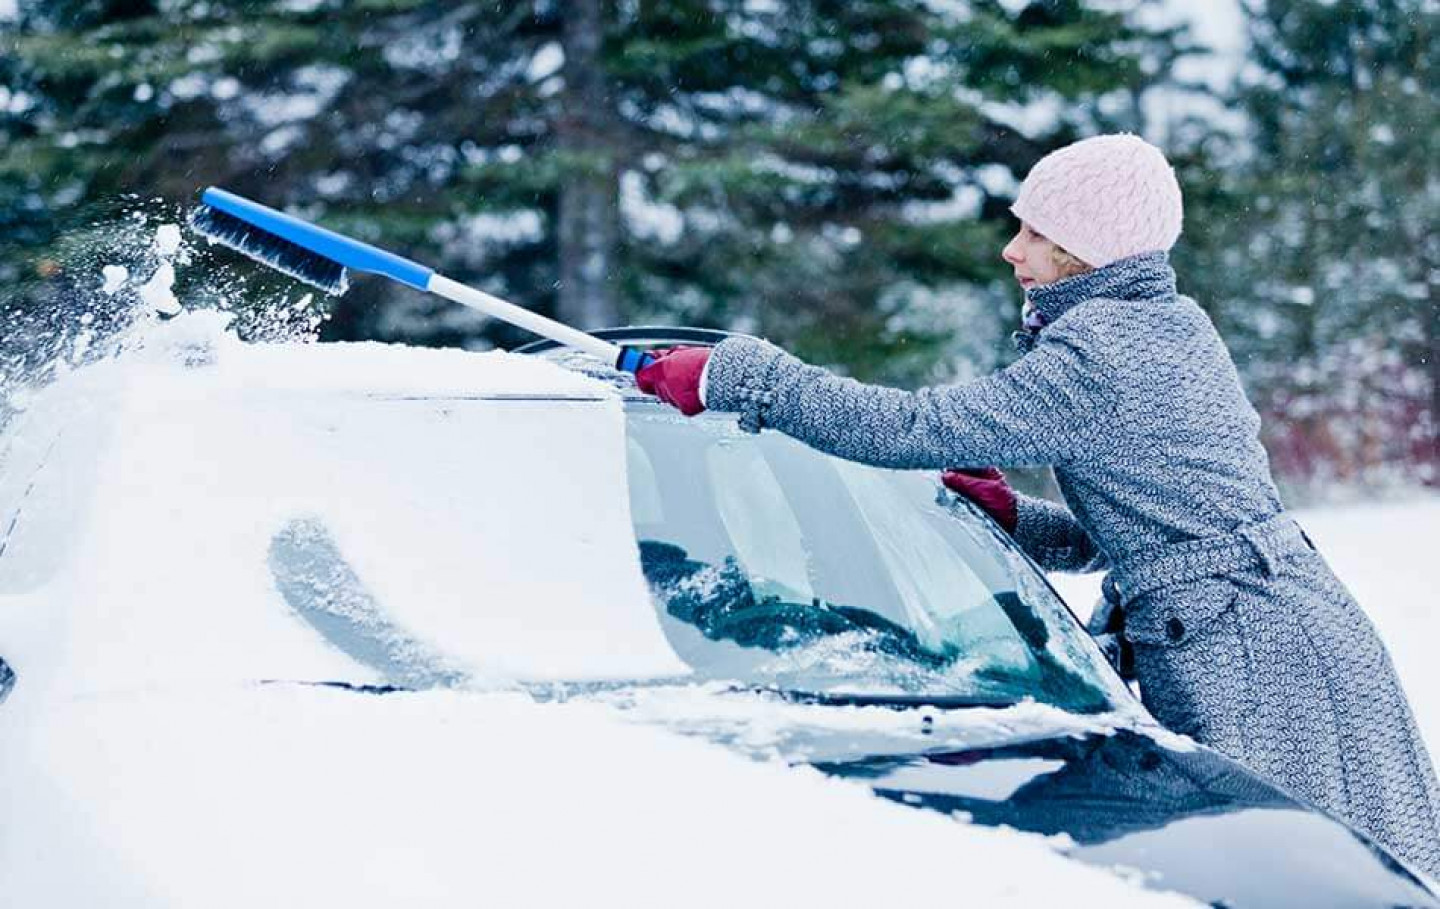 Auto Glass Care Tips For Cold Weather in Colorado